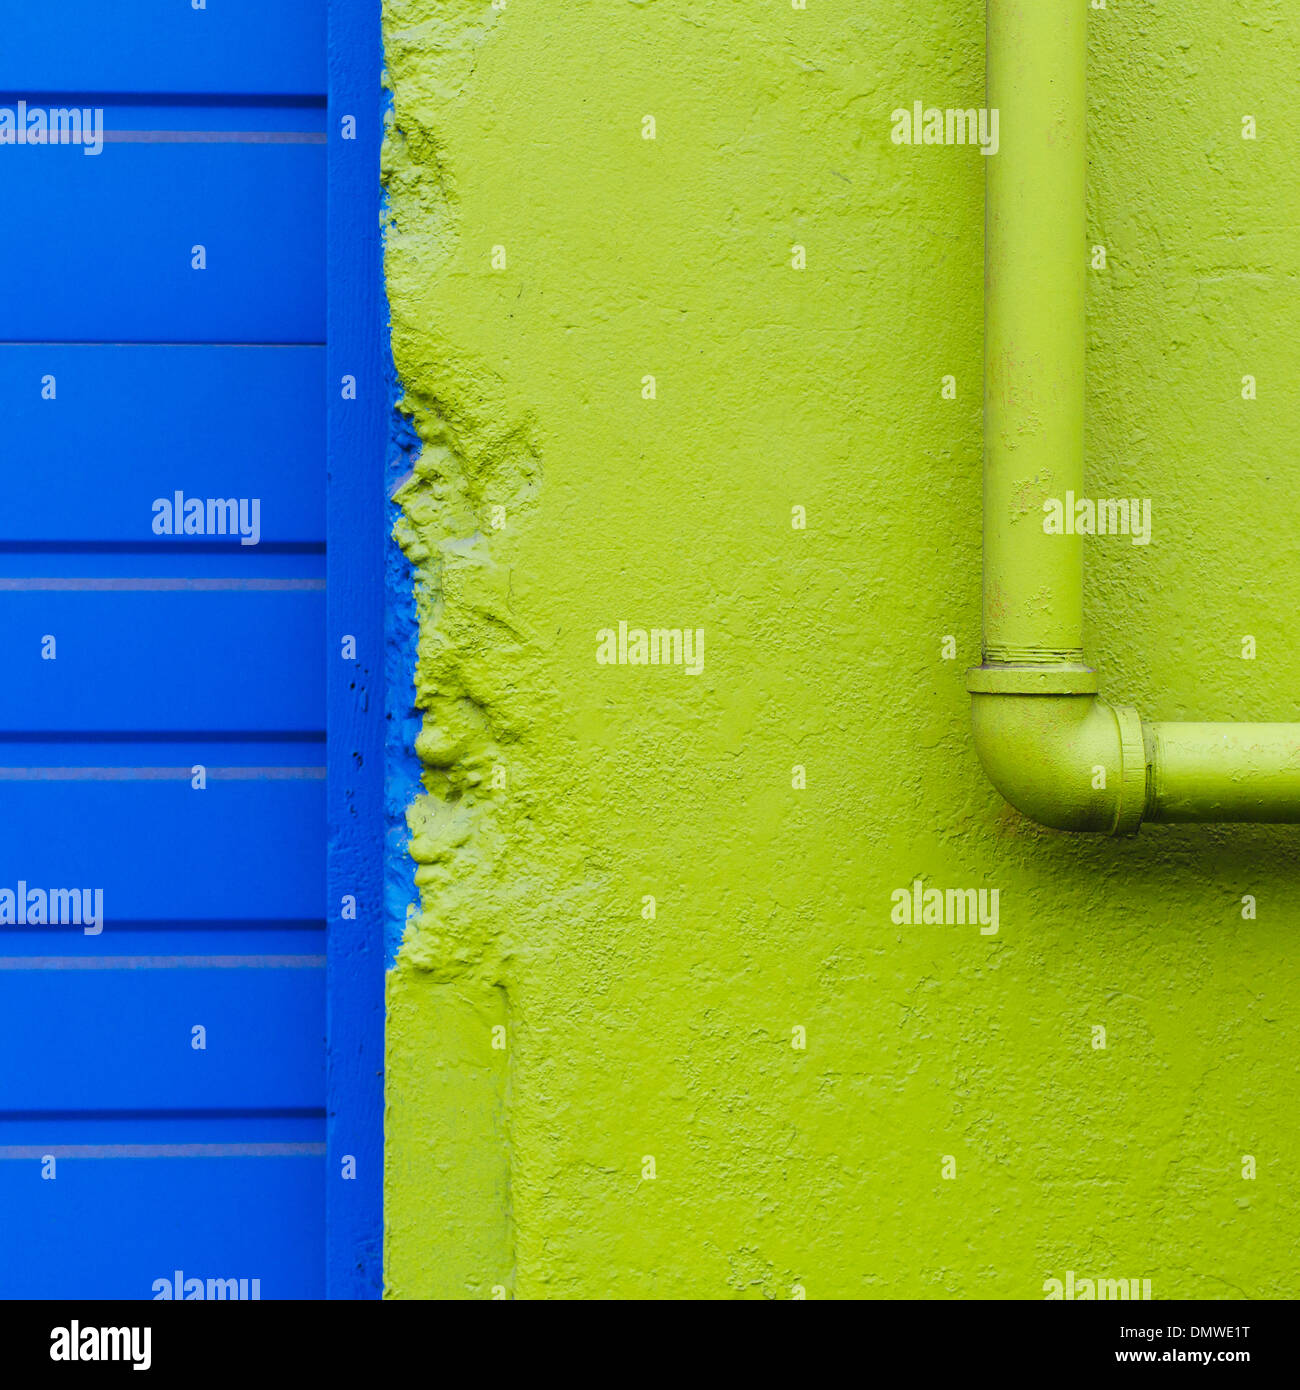 A green painted wall and pipe by a blue doorway. - Stock Image